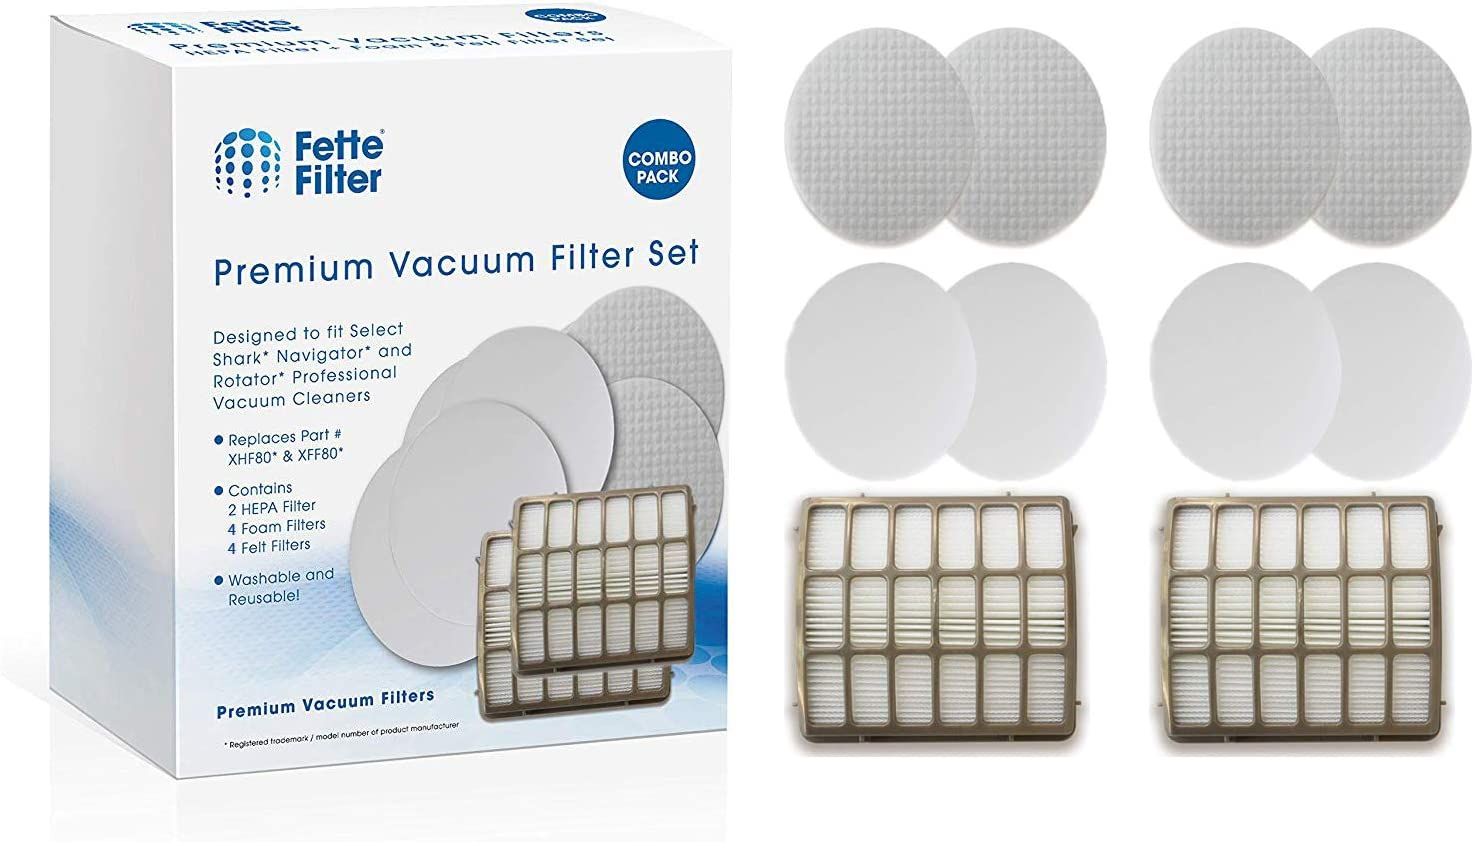 Fette Filter - Vacuum Filters Compatible with Shark Navigator Professional NV70, NV80, NV90, NV95, UV420 Vacuums. Compare to Part # XFF80 & XHF80. (2 Hepa 4 Foam)